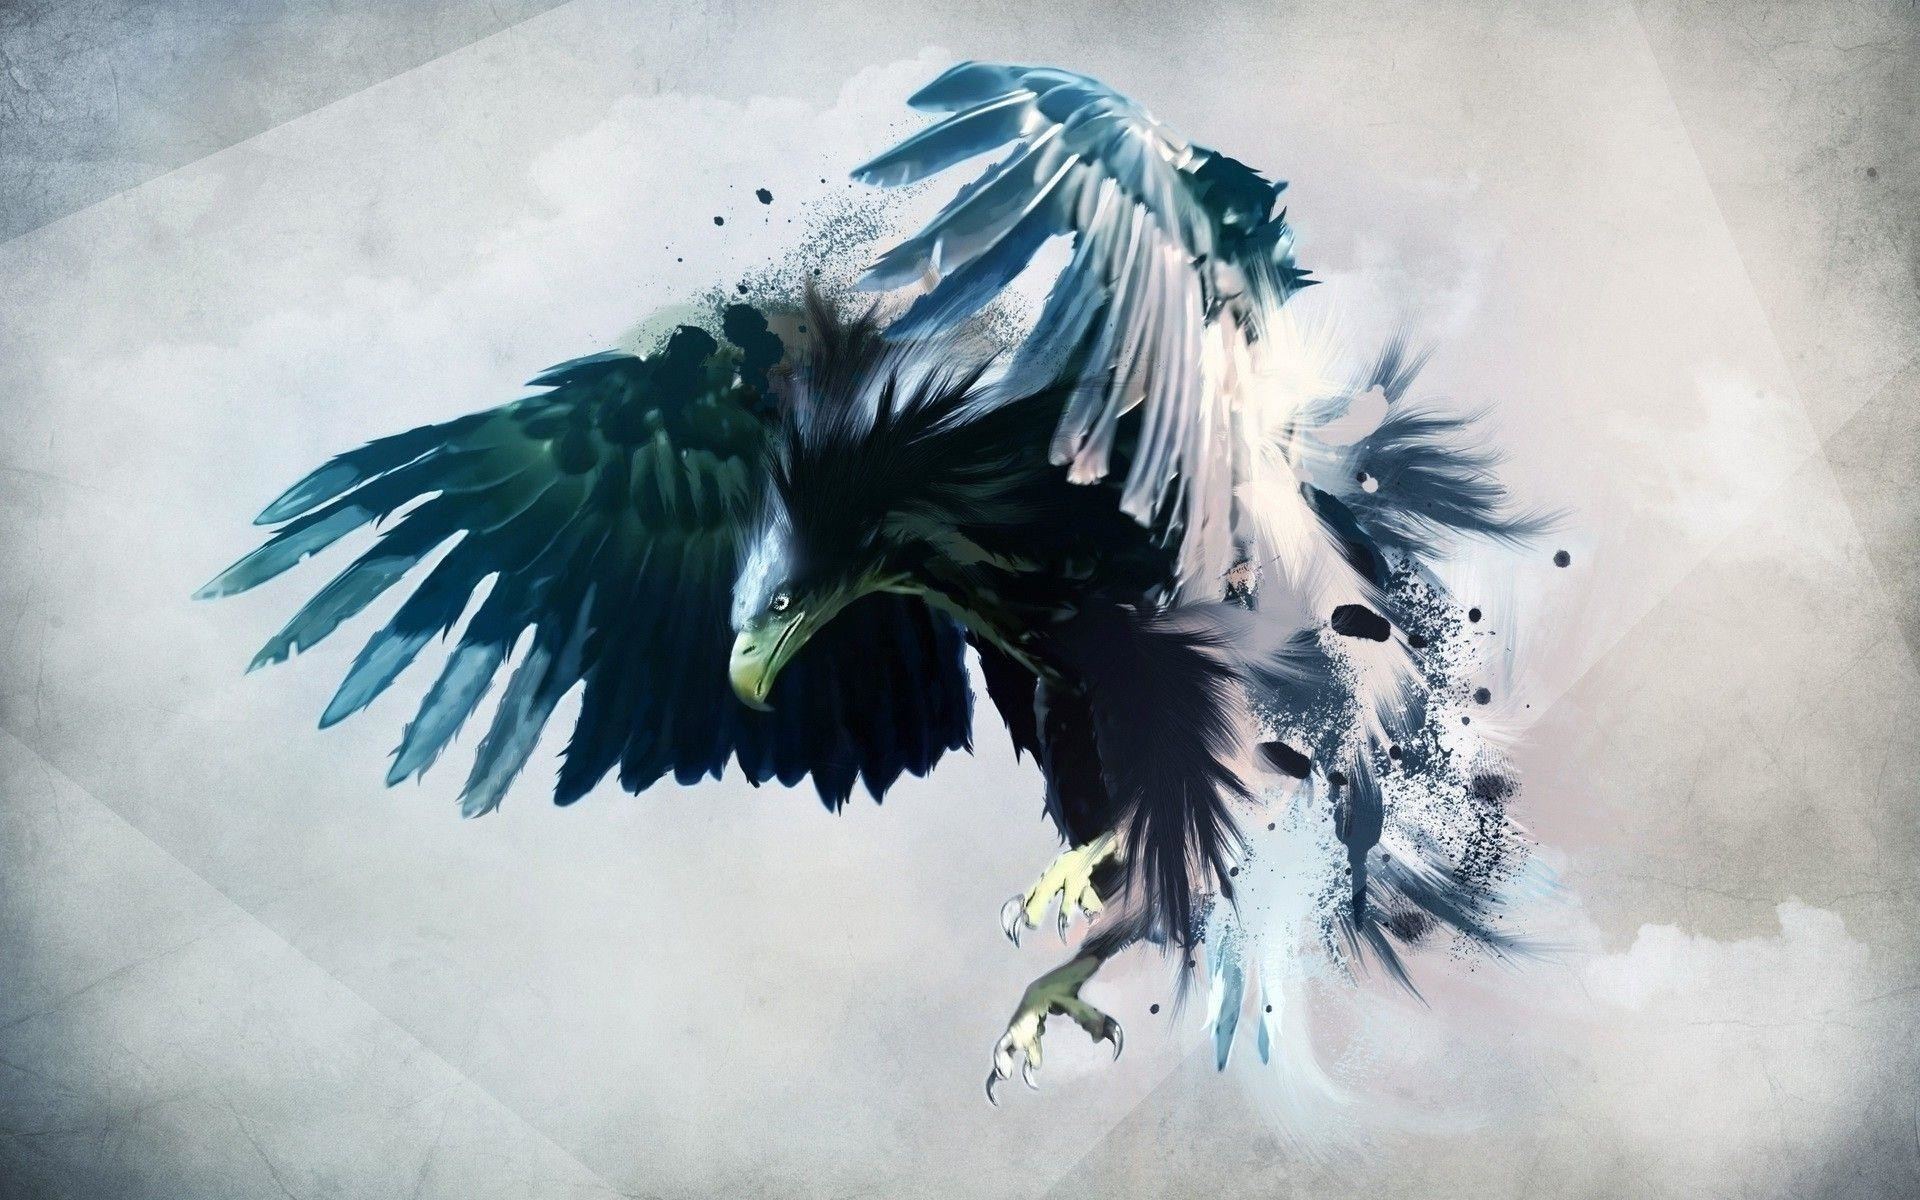 1920x1200 Eagle Wallpaper Hd wallpaper - 678266